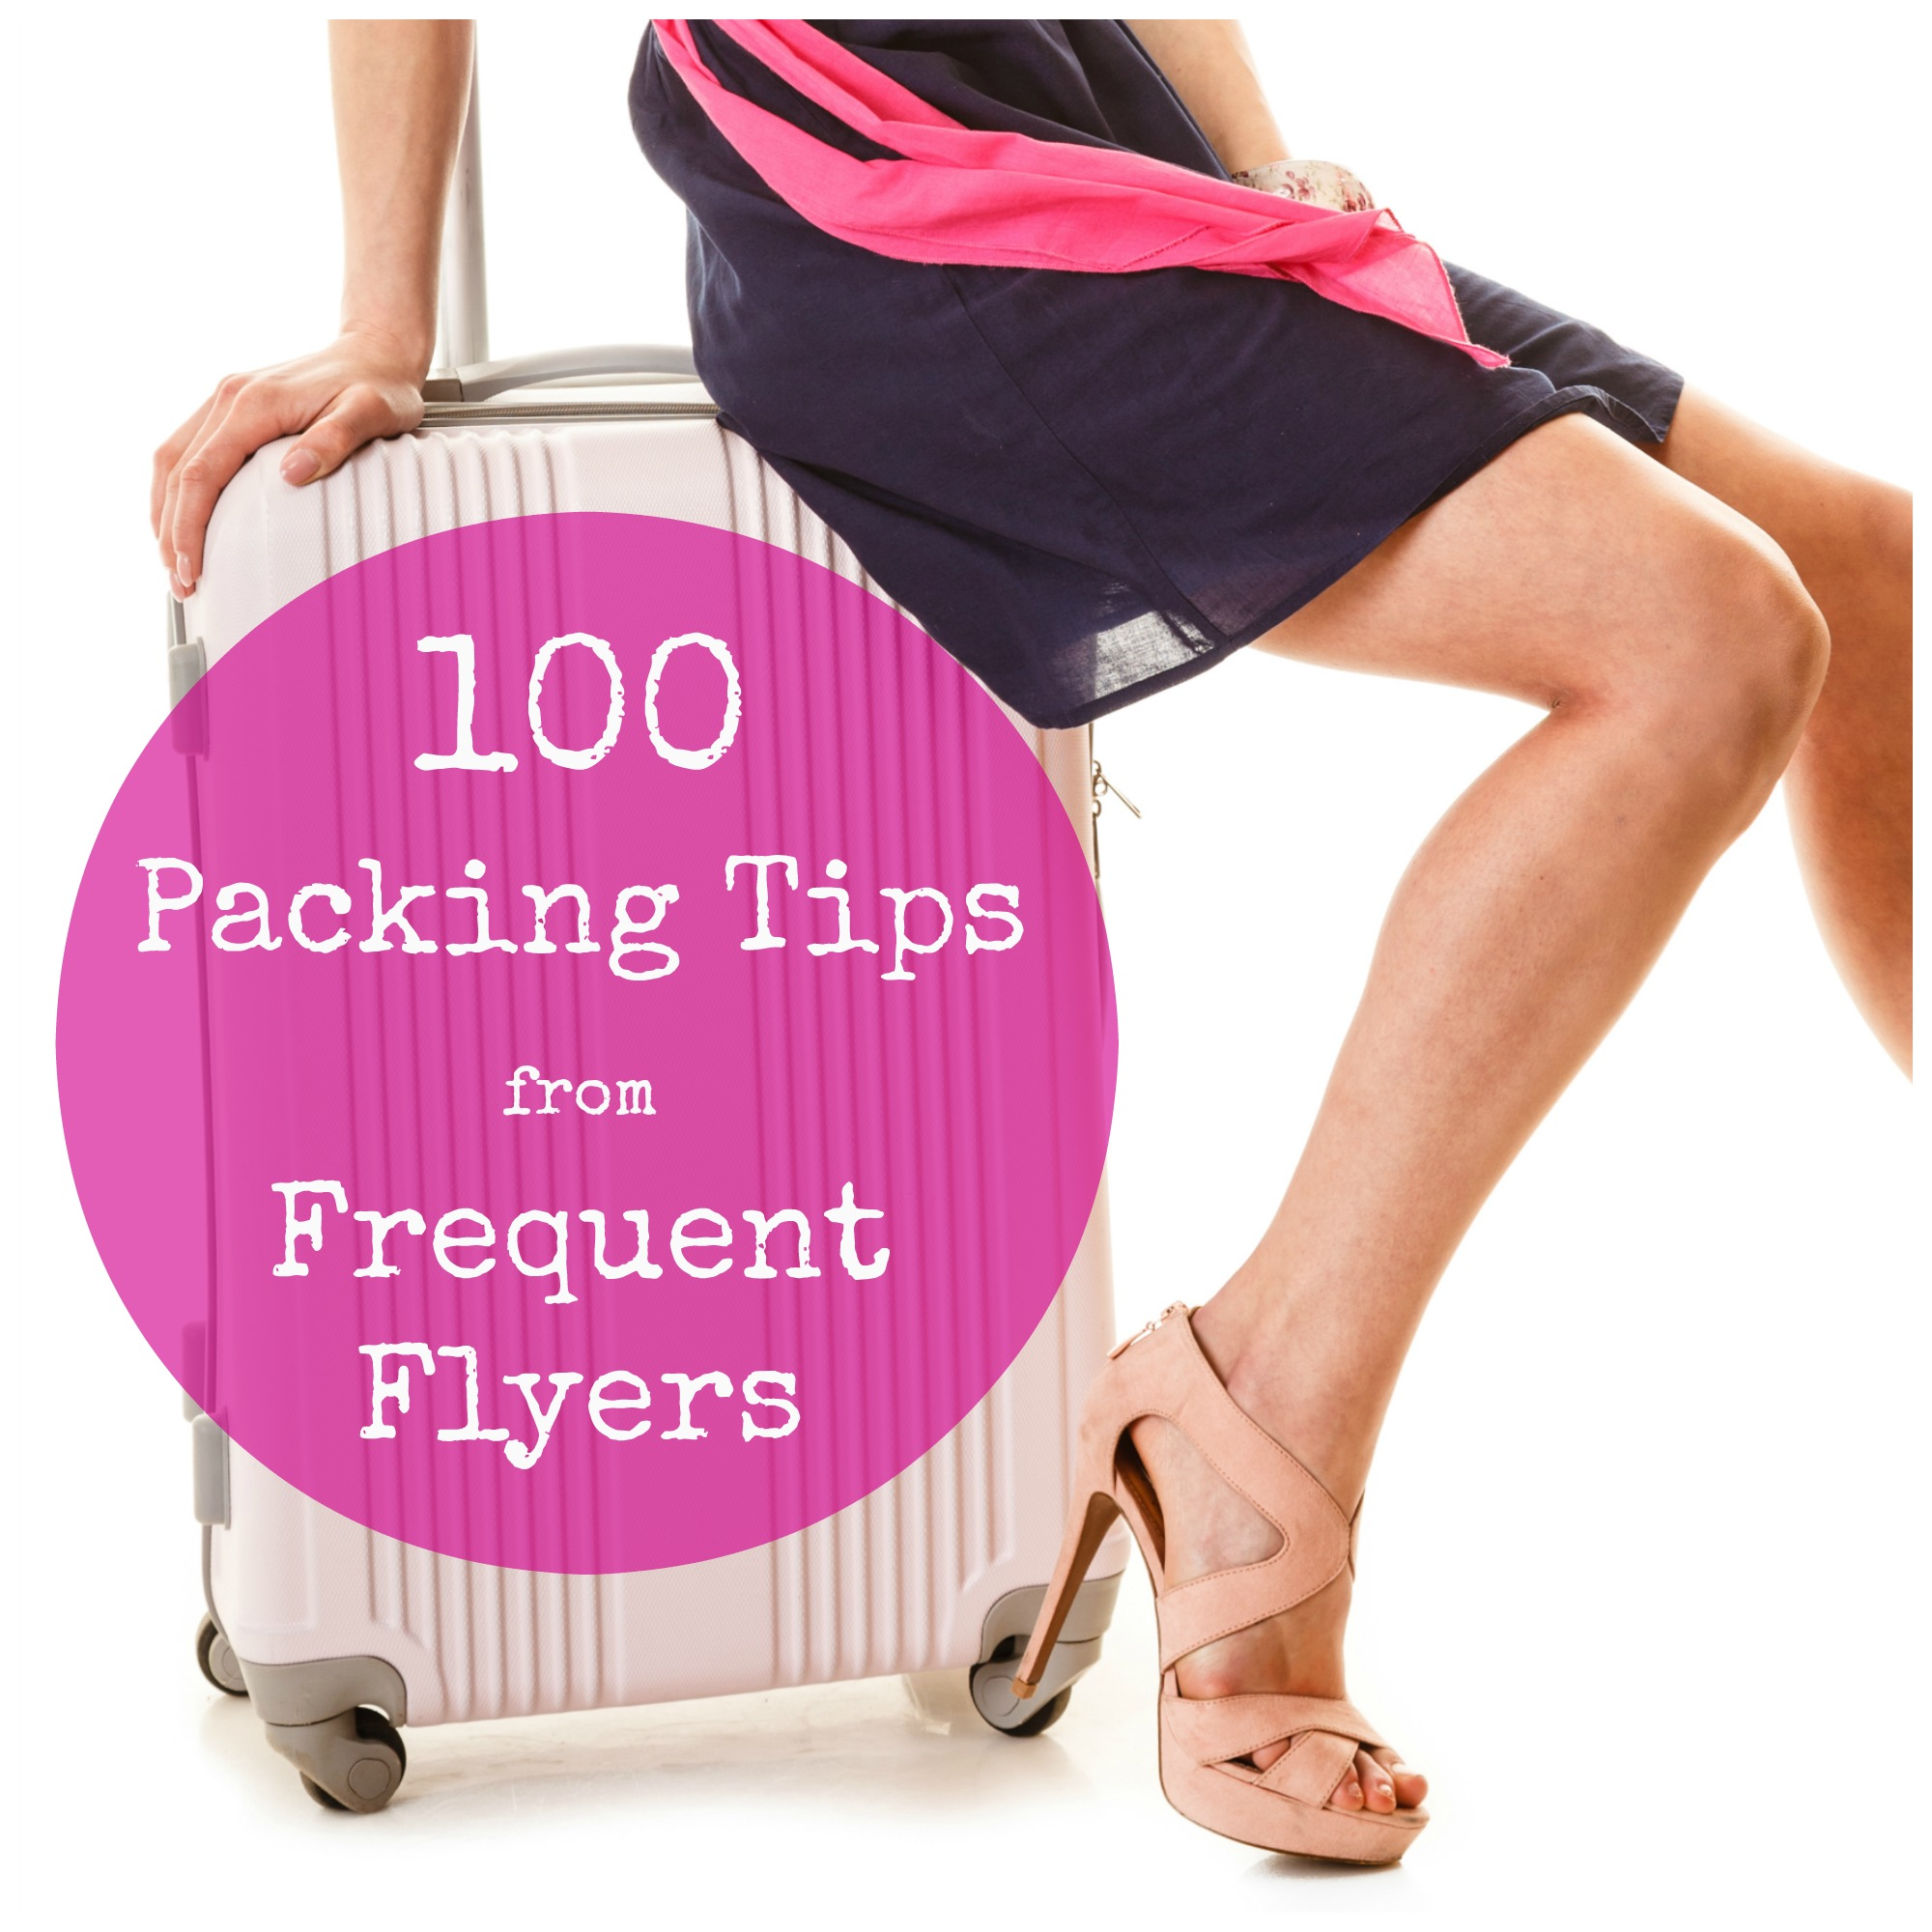 Discover 100 Travel Packing Tips from Frequent Flyers, what to take when you holiday...